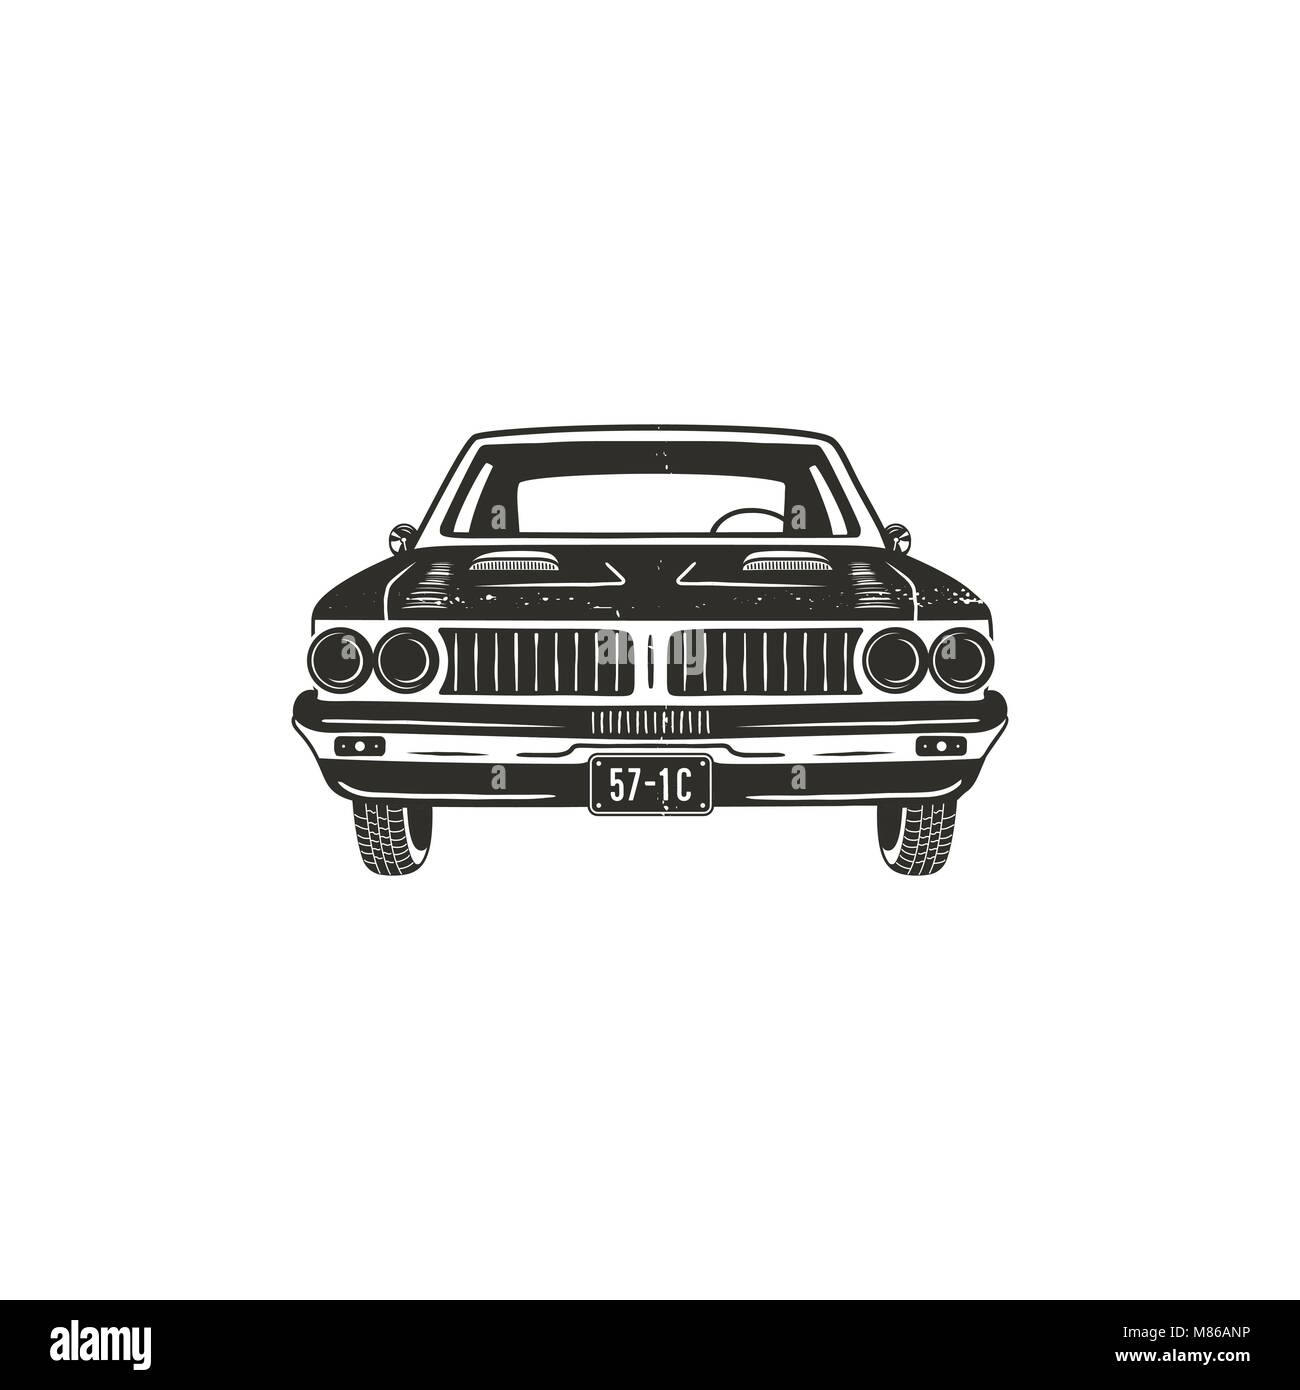 Vintage hand drawn muscle car. Retro car symbol design. Classic car emblem isolated on white background. Stock vector - Stock Image